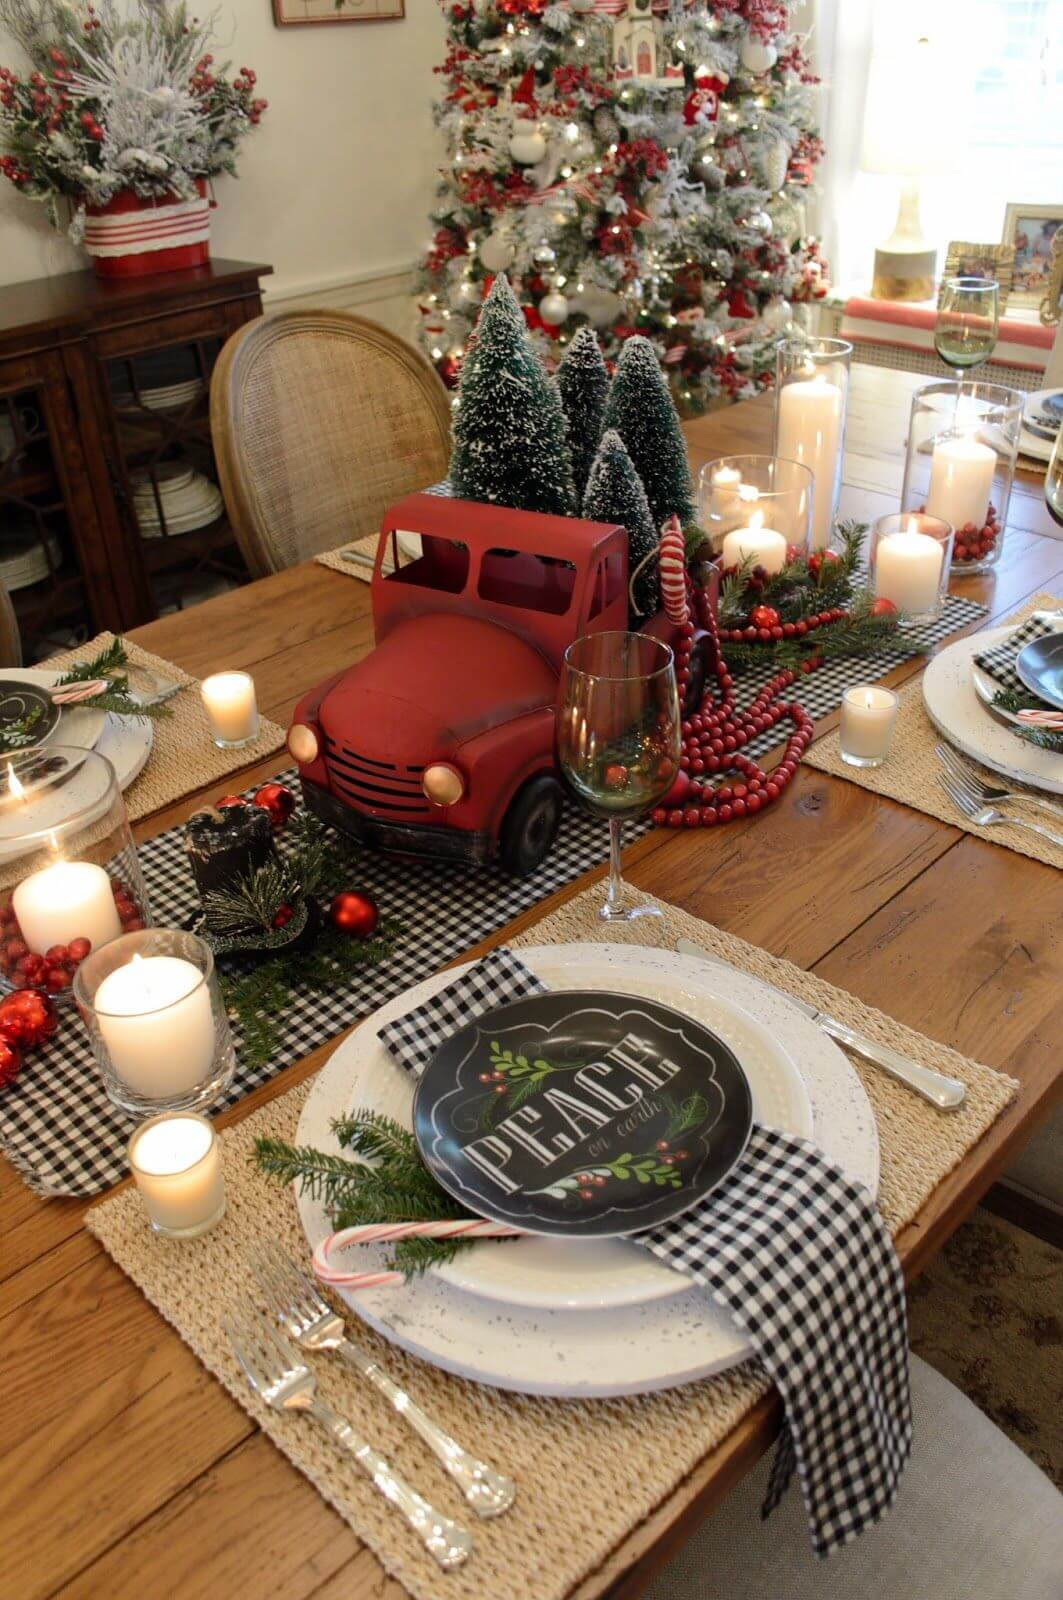 break up red with black plaid - Red And Black Plaid Christmas Decor